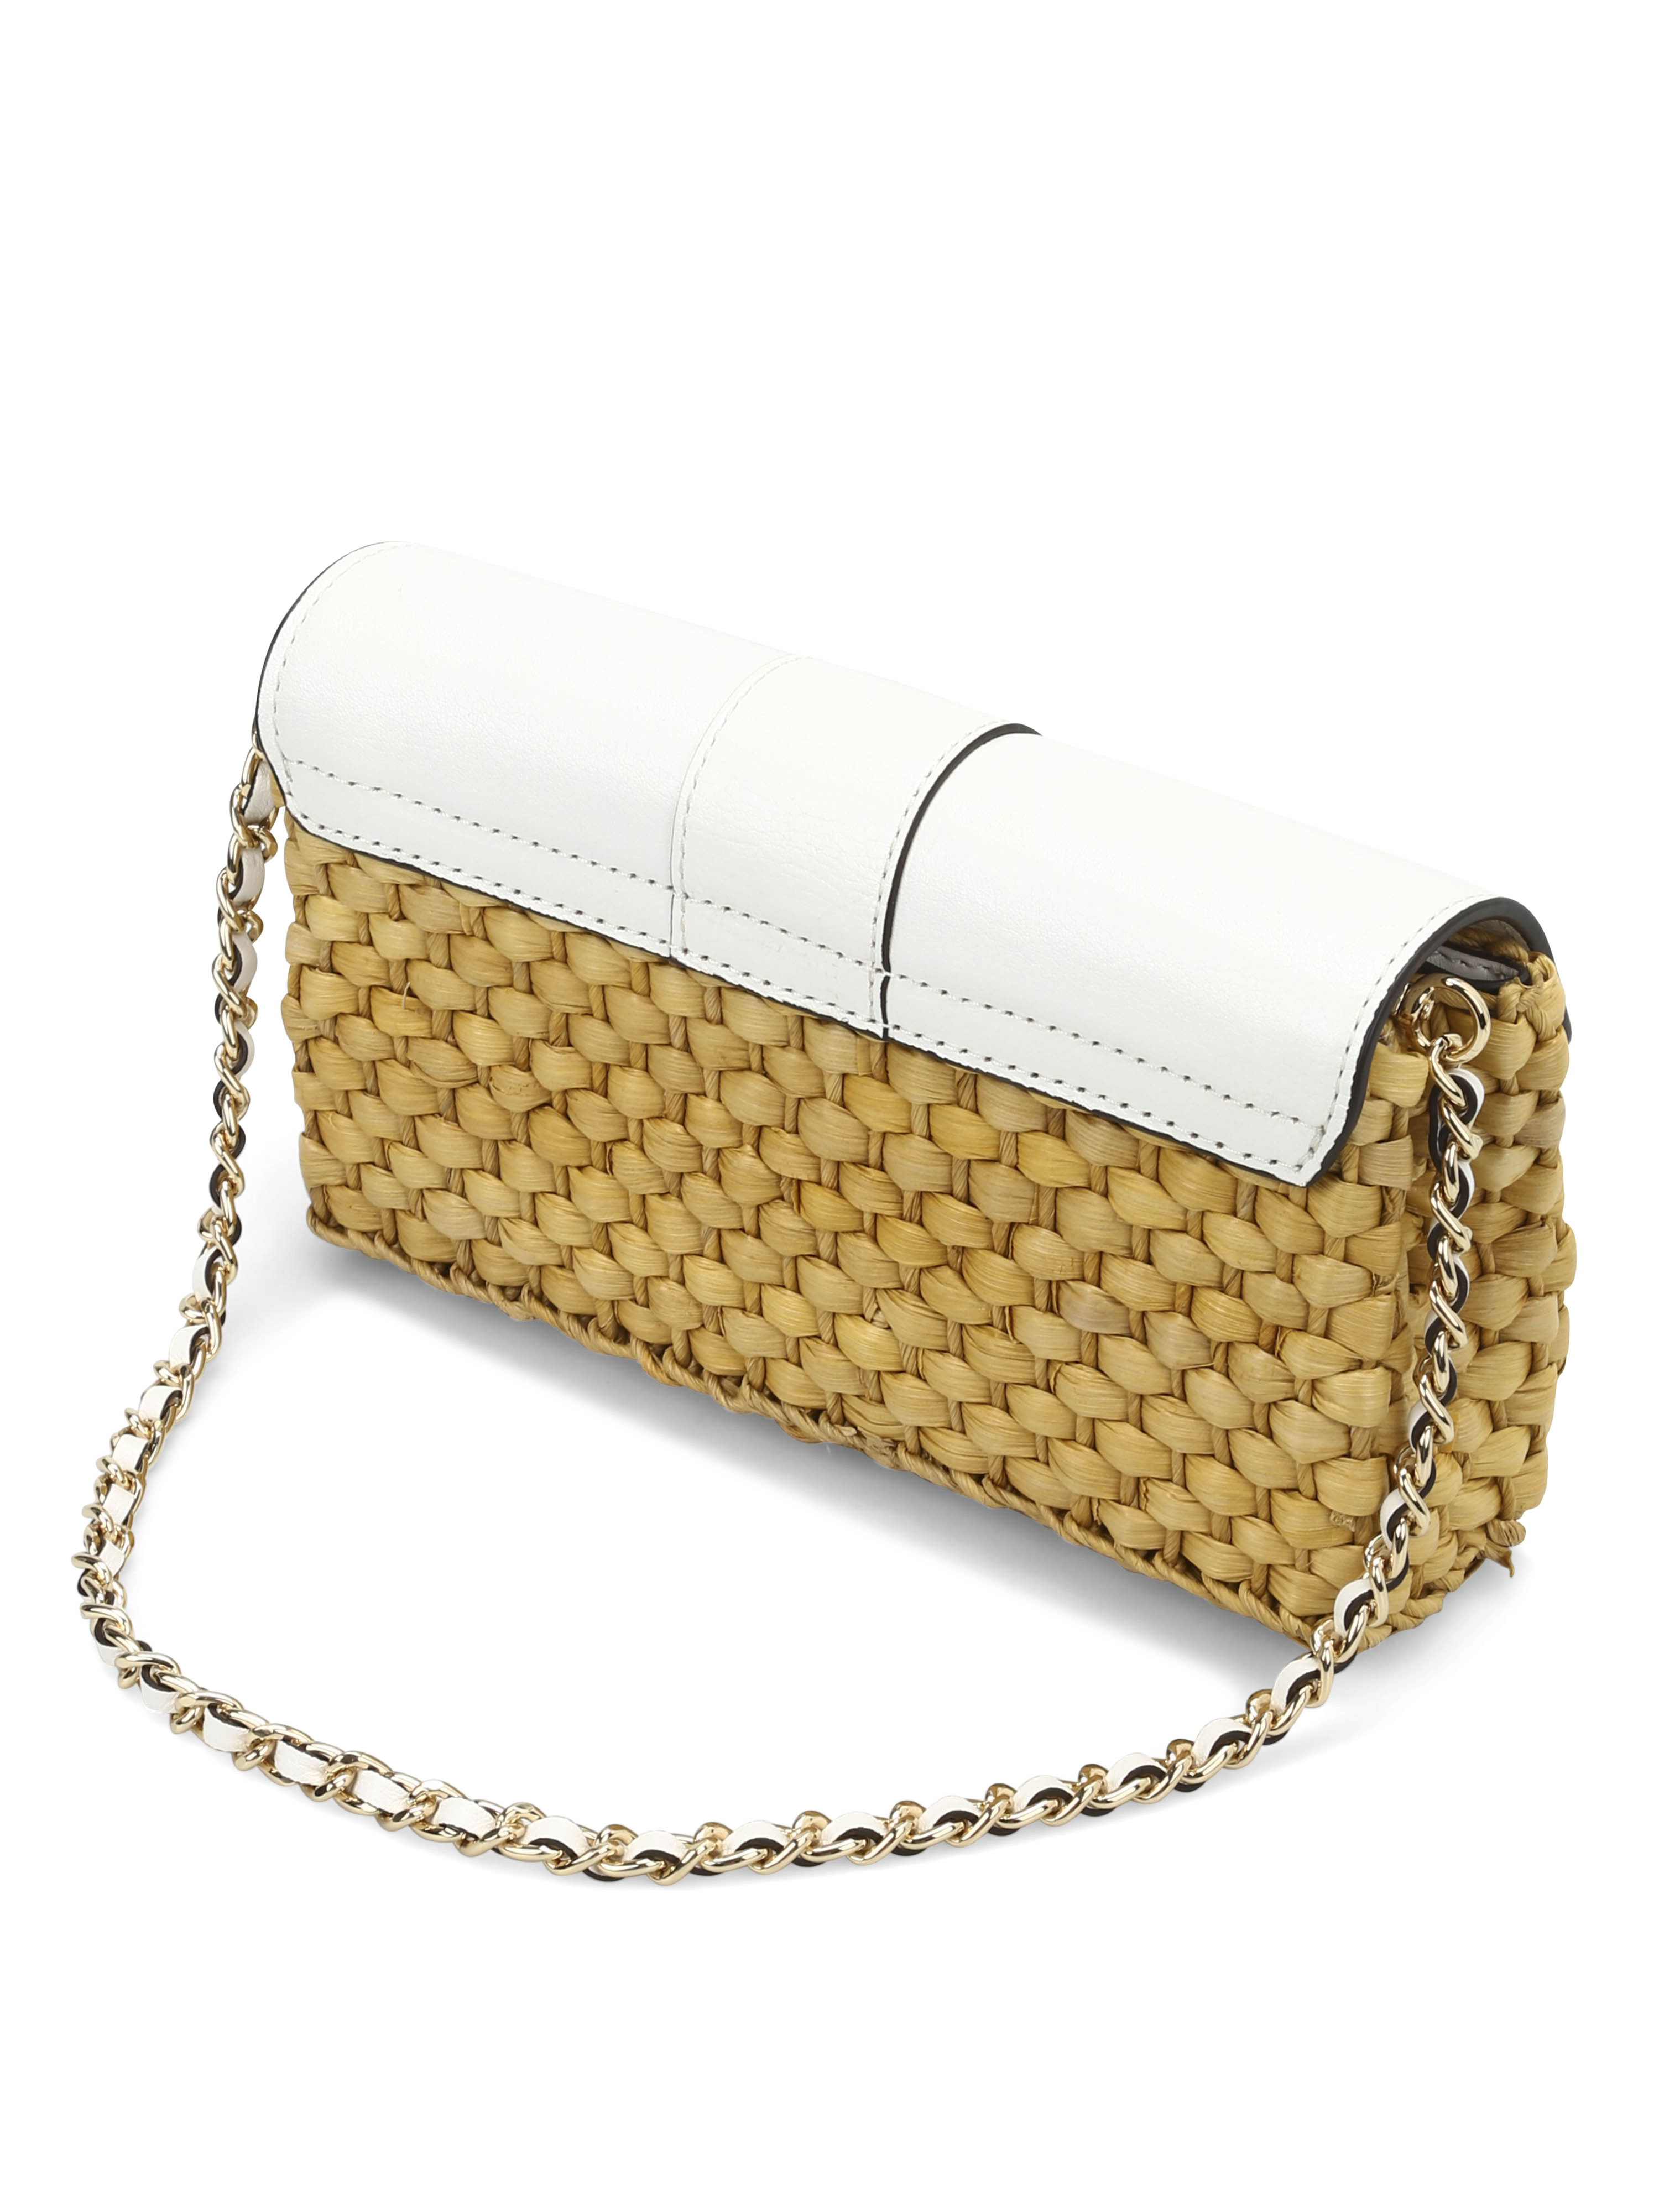 4e2343bcafa2b Michael kors straw gabriella clutch clutches optic jpg 3000x4000 Michael  kors straw clutch